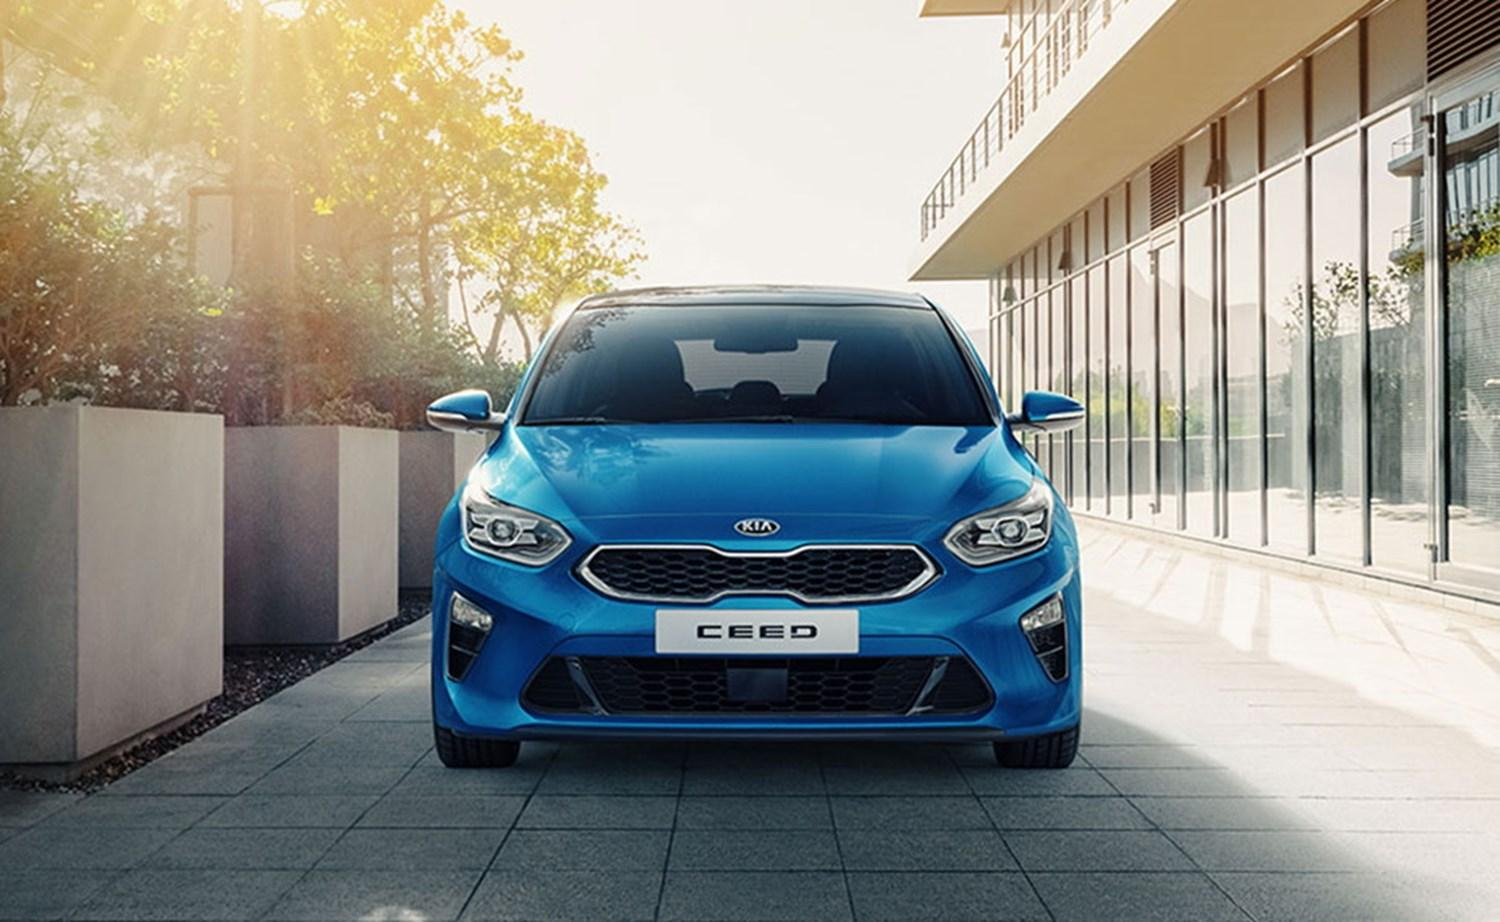 Blue Ceed front on